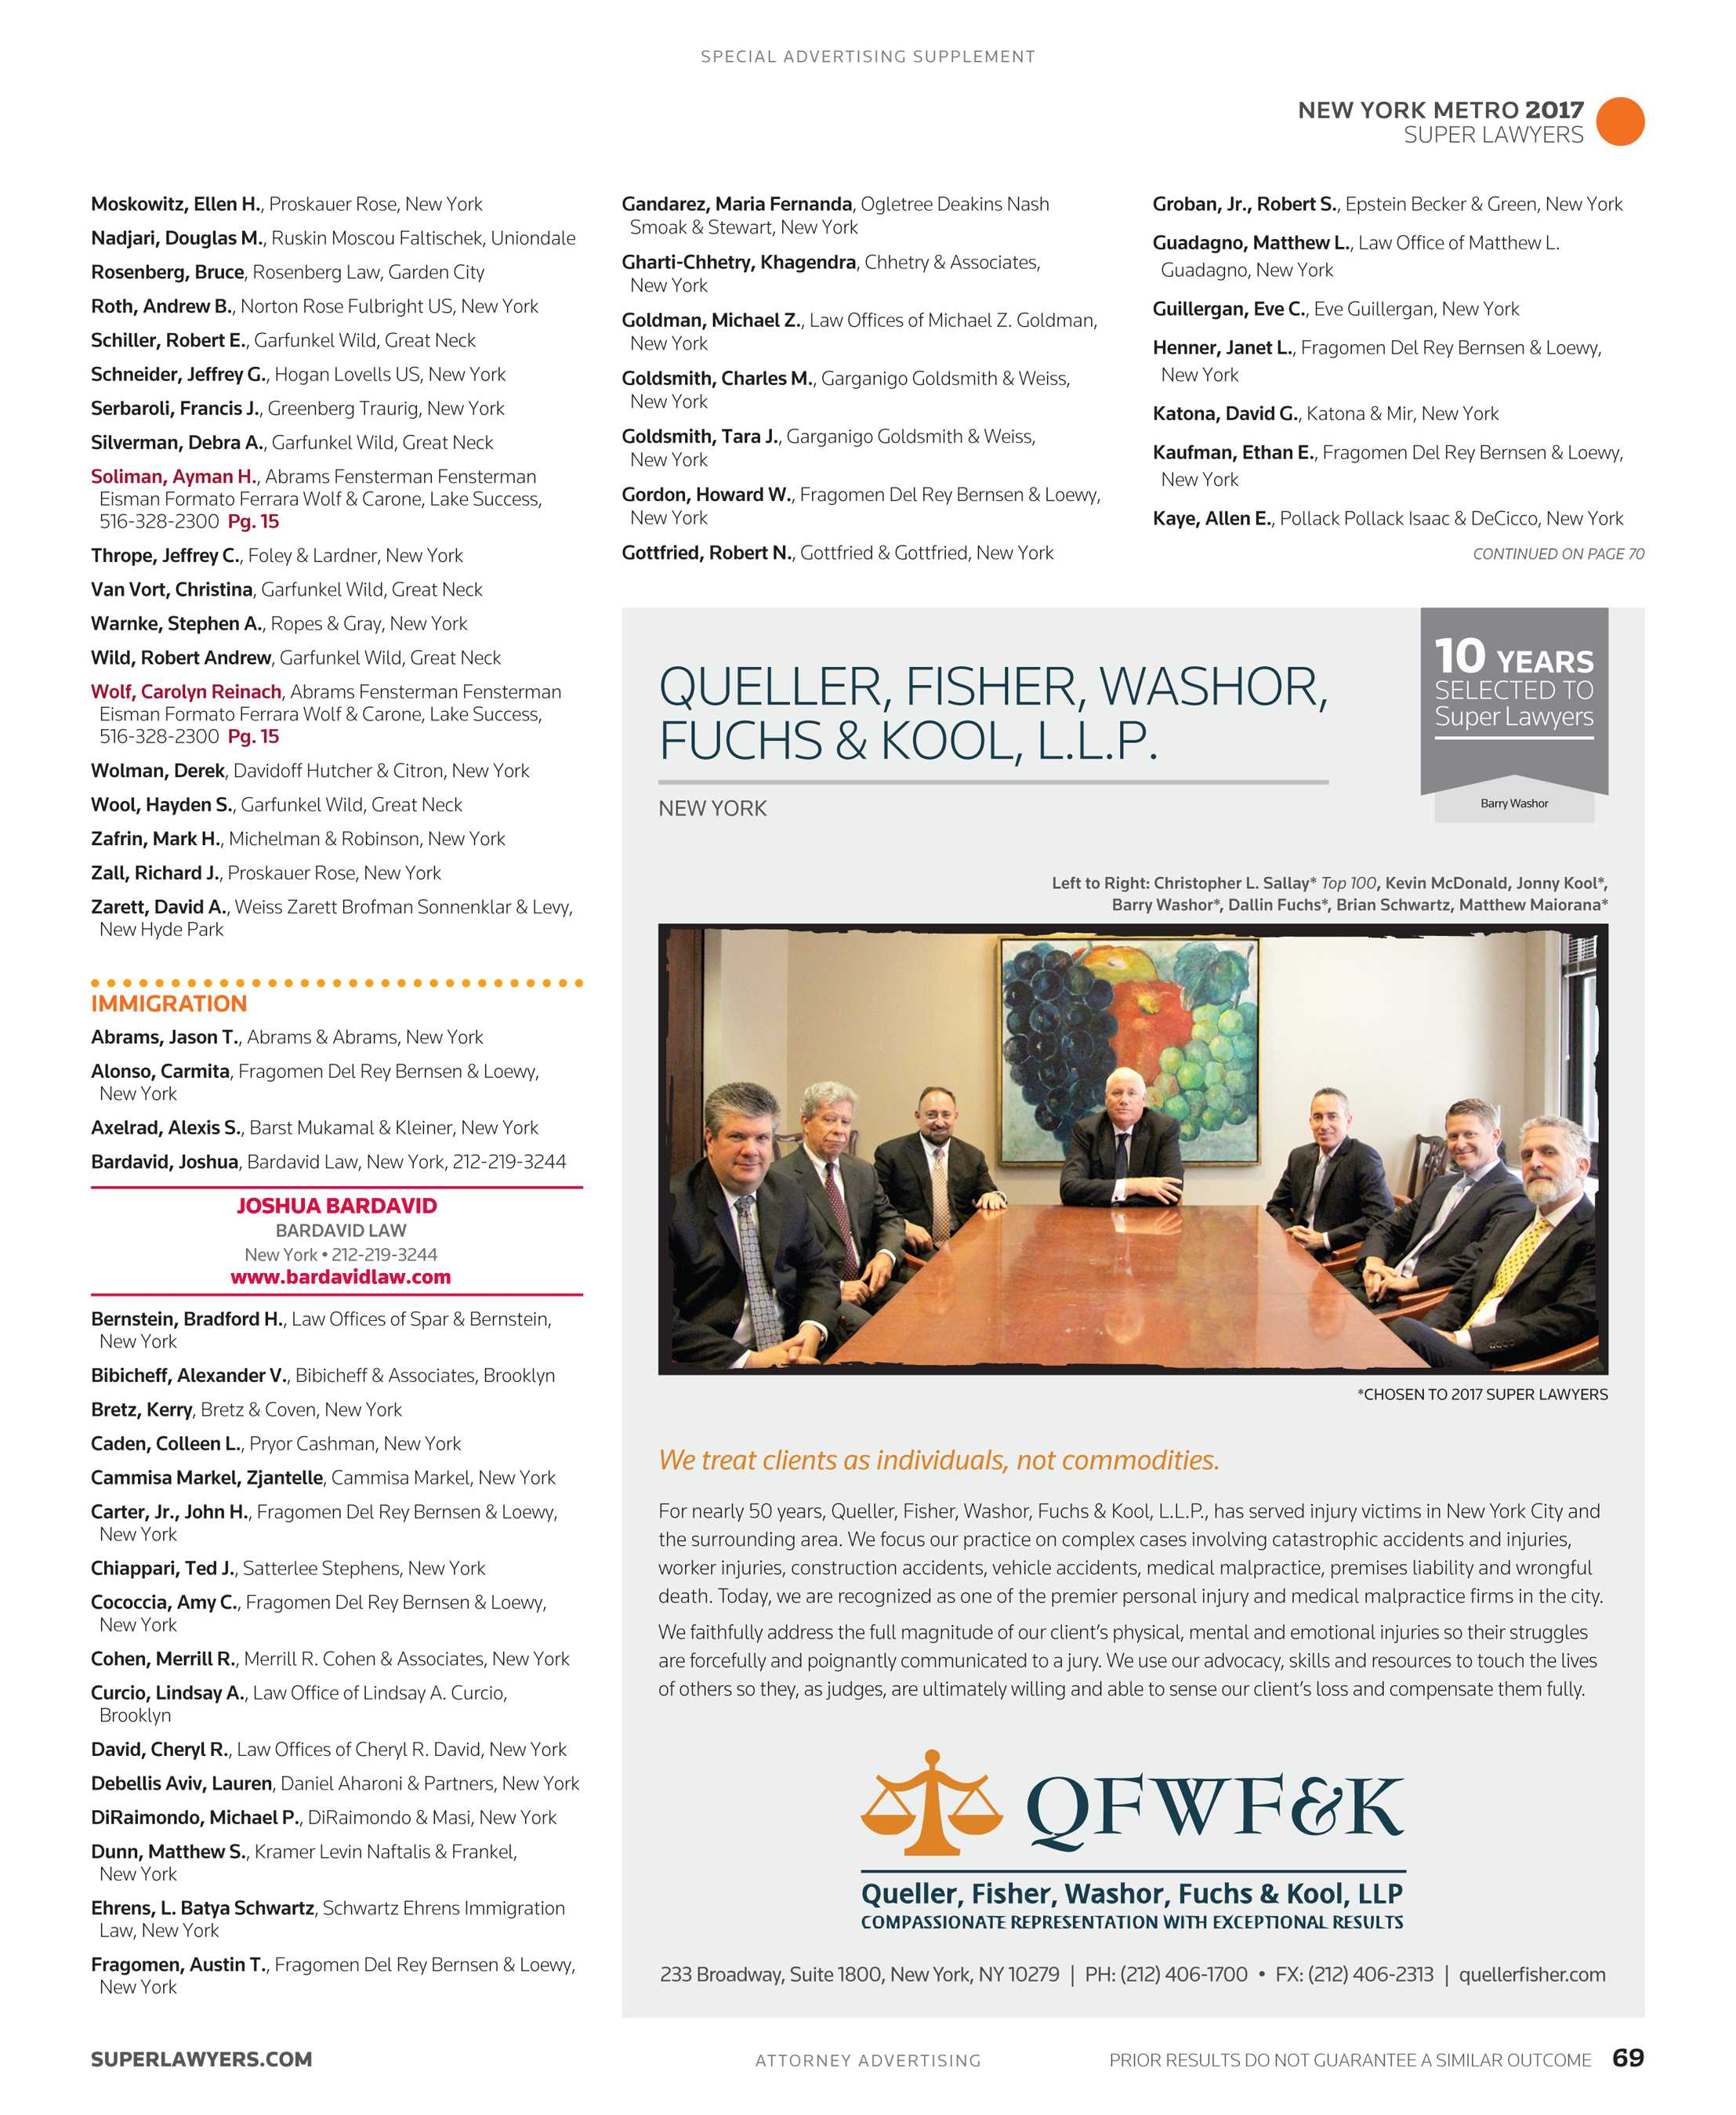 caf53b6fcee Super Lawyers - New York Metro 2017 Supplement - page 69